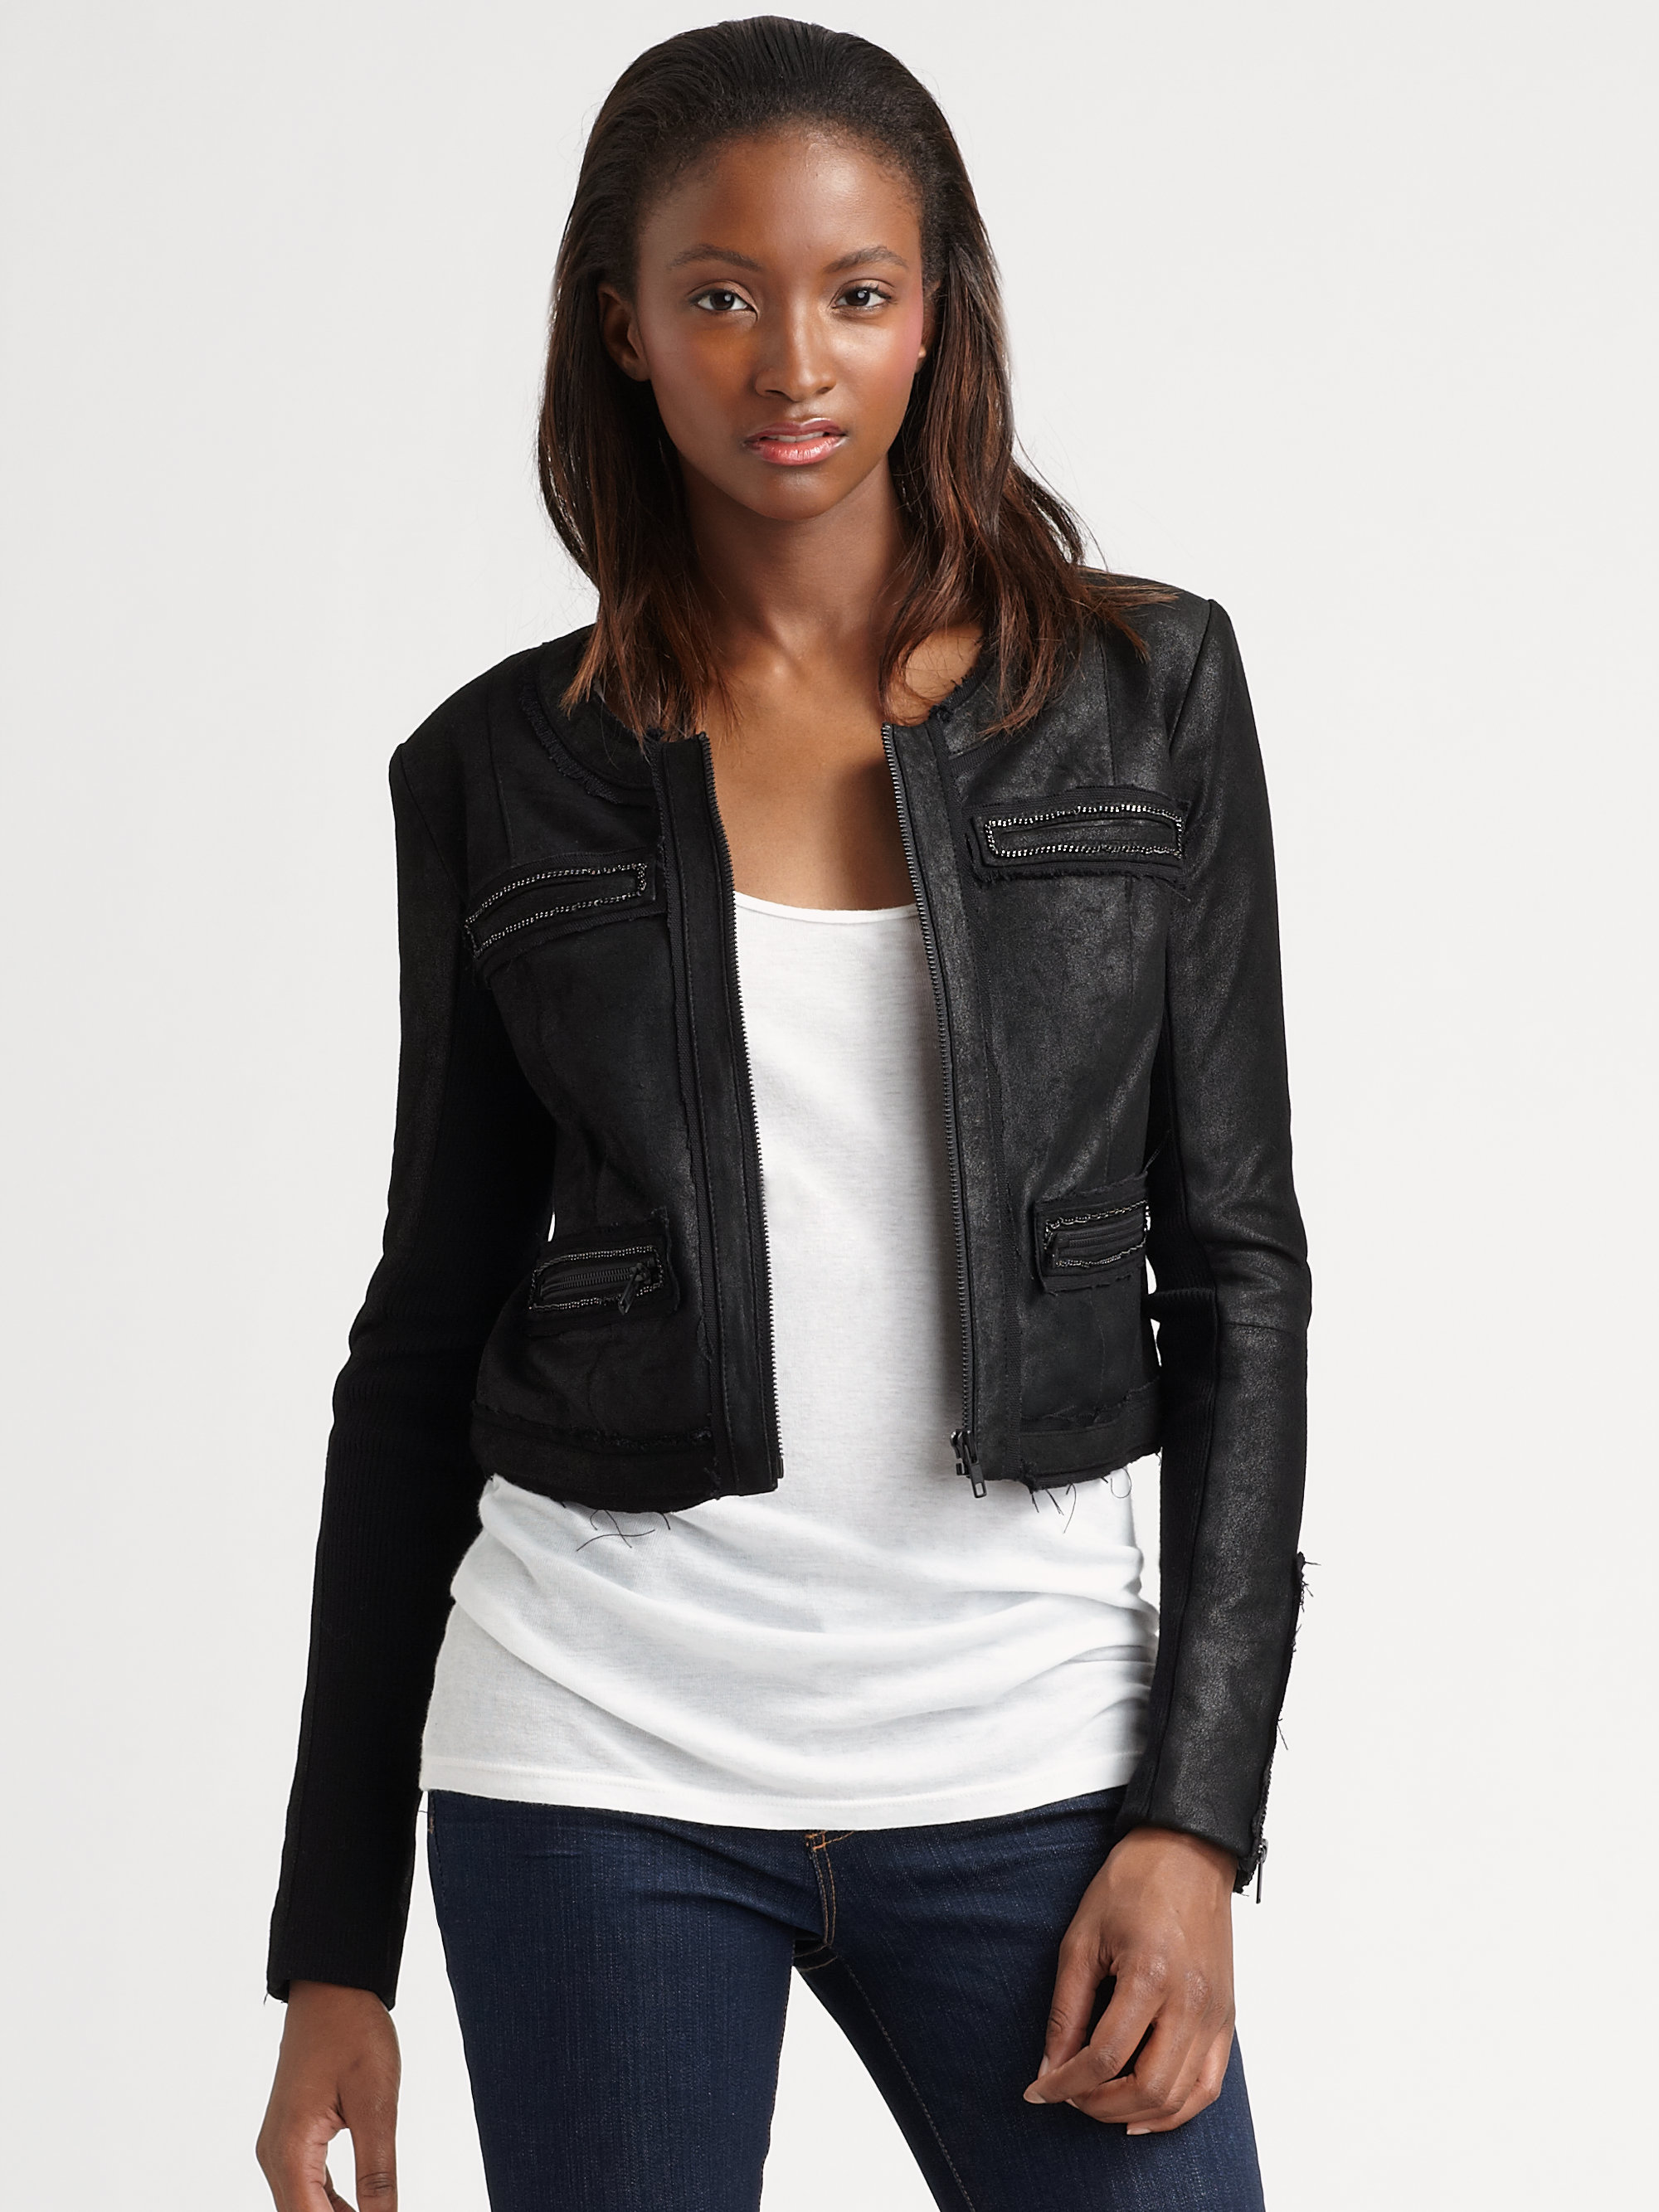 Veda Cropped Leather Jacket in Black | Lyst